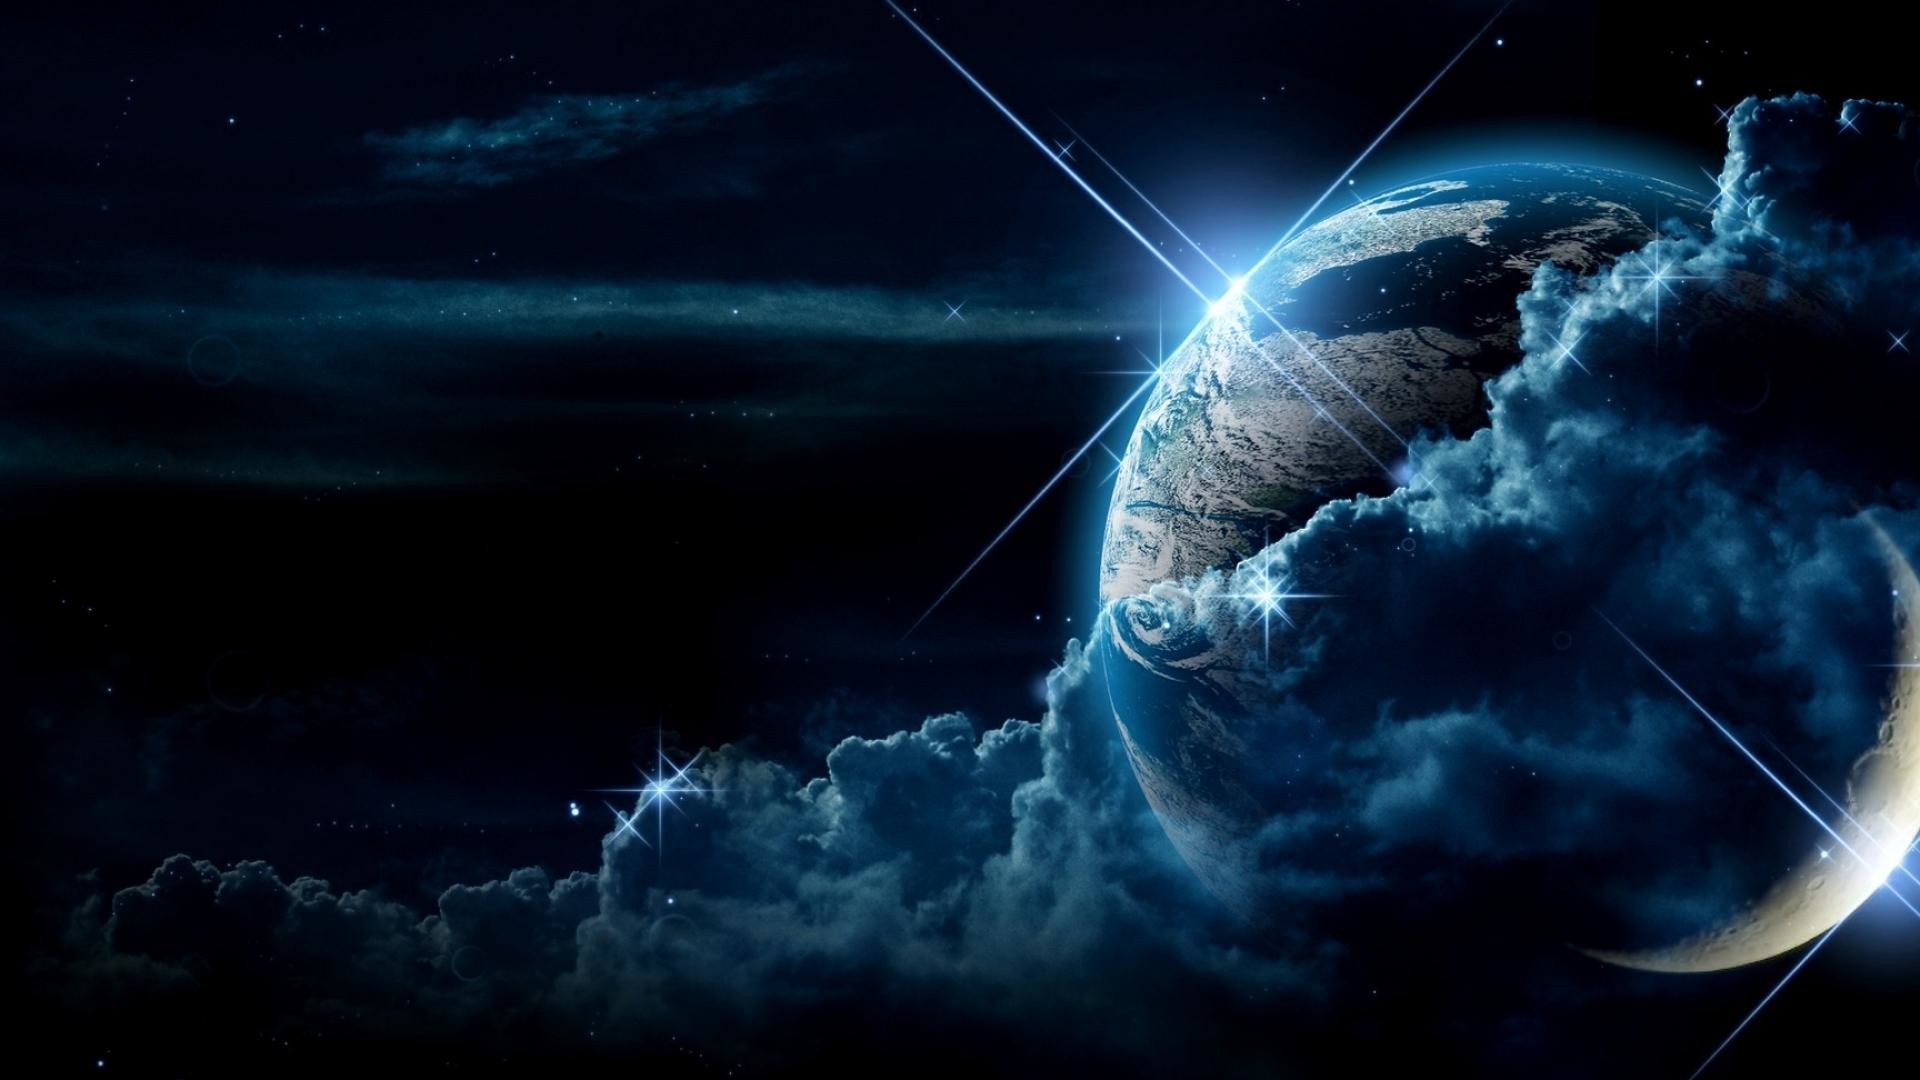 Space Background Wallpaper Fantastic HDQ Live Space Wallpapers